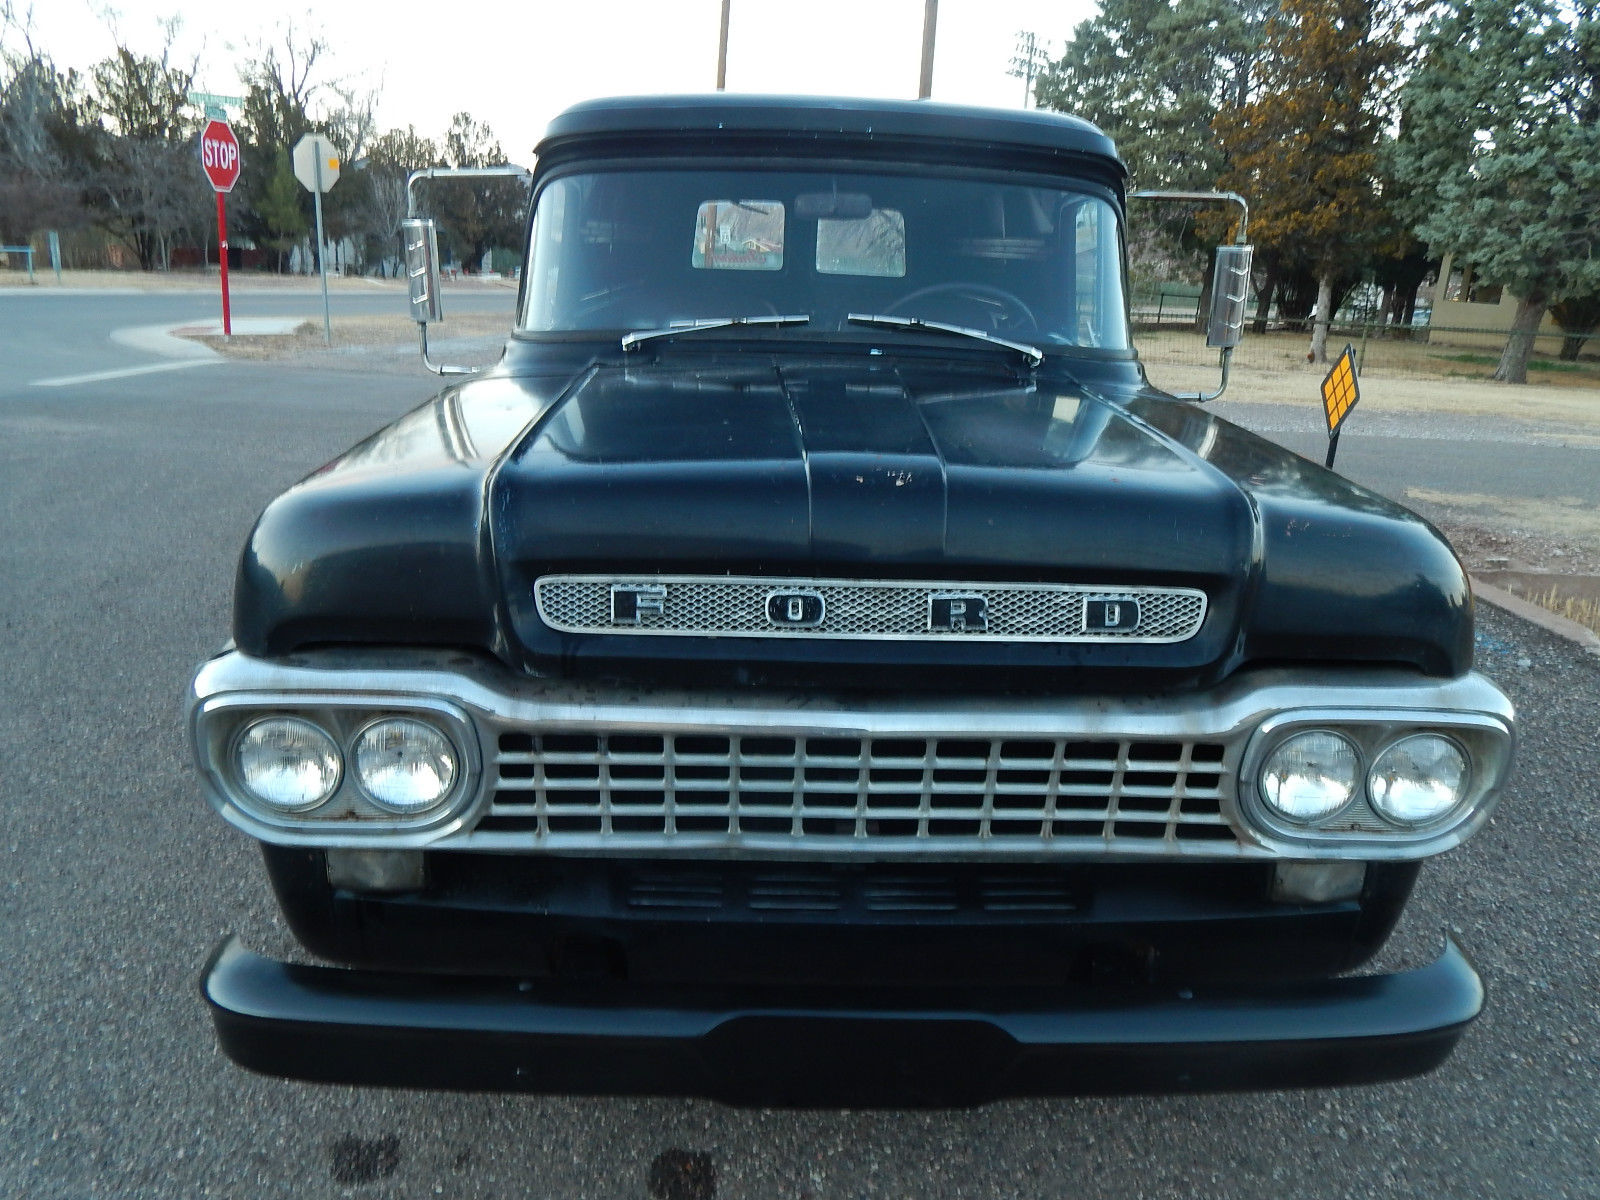 1958 F100 1/2 ton, Ford Panel, Harley Davidson, pick-up, hot-rod, motorcycle - Classic Ford ...